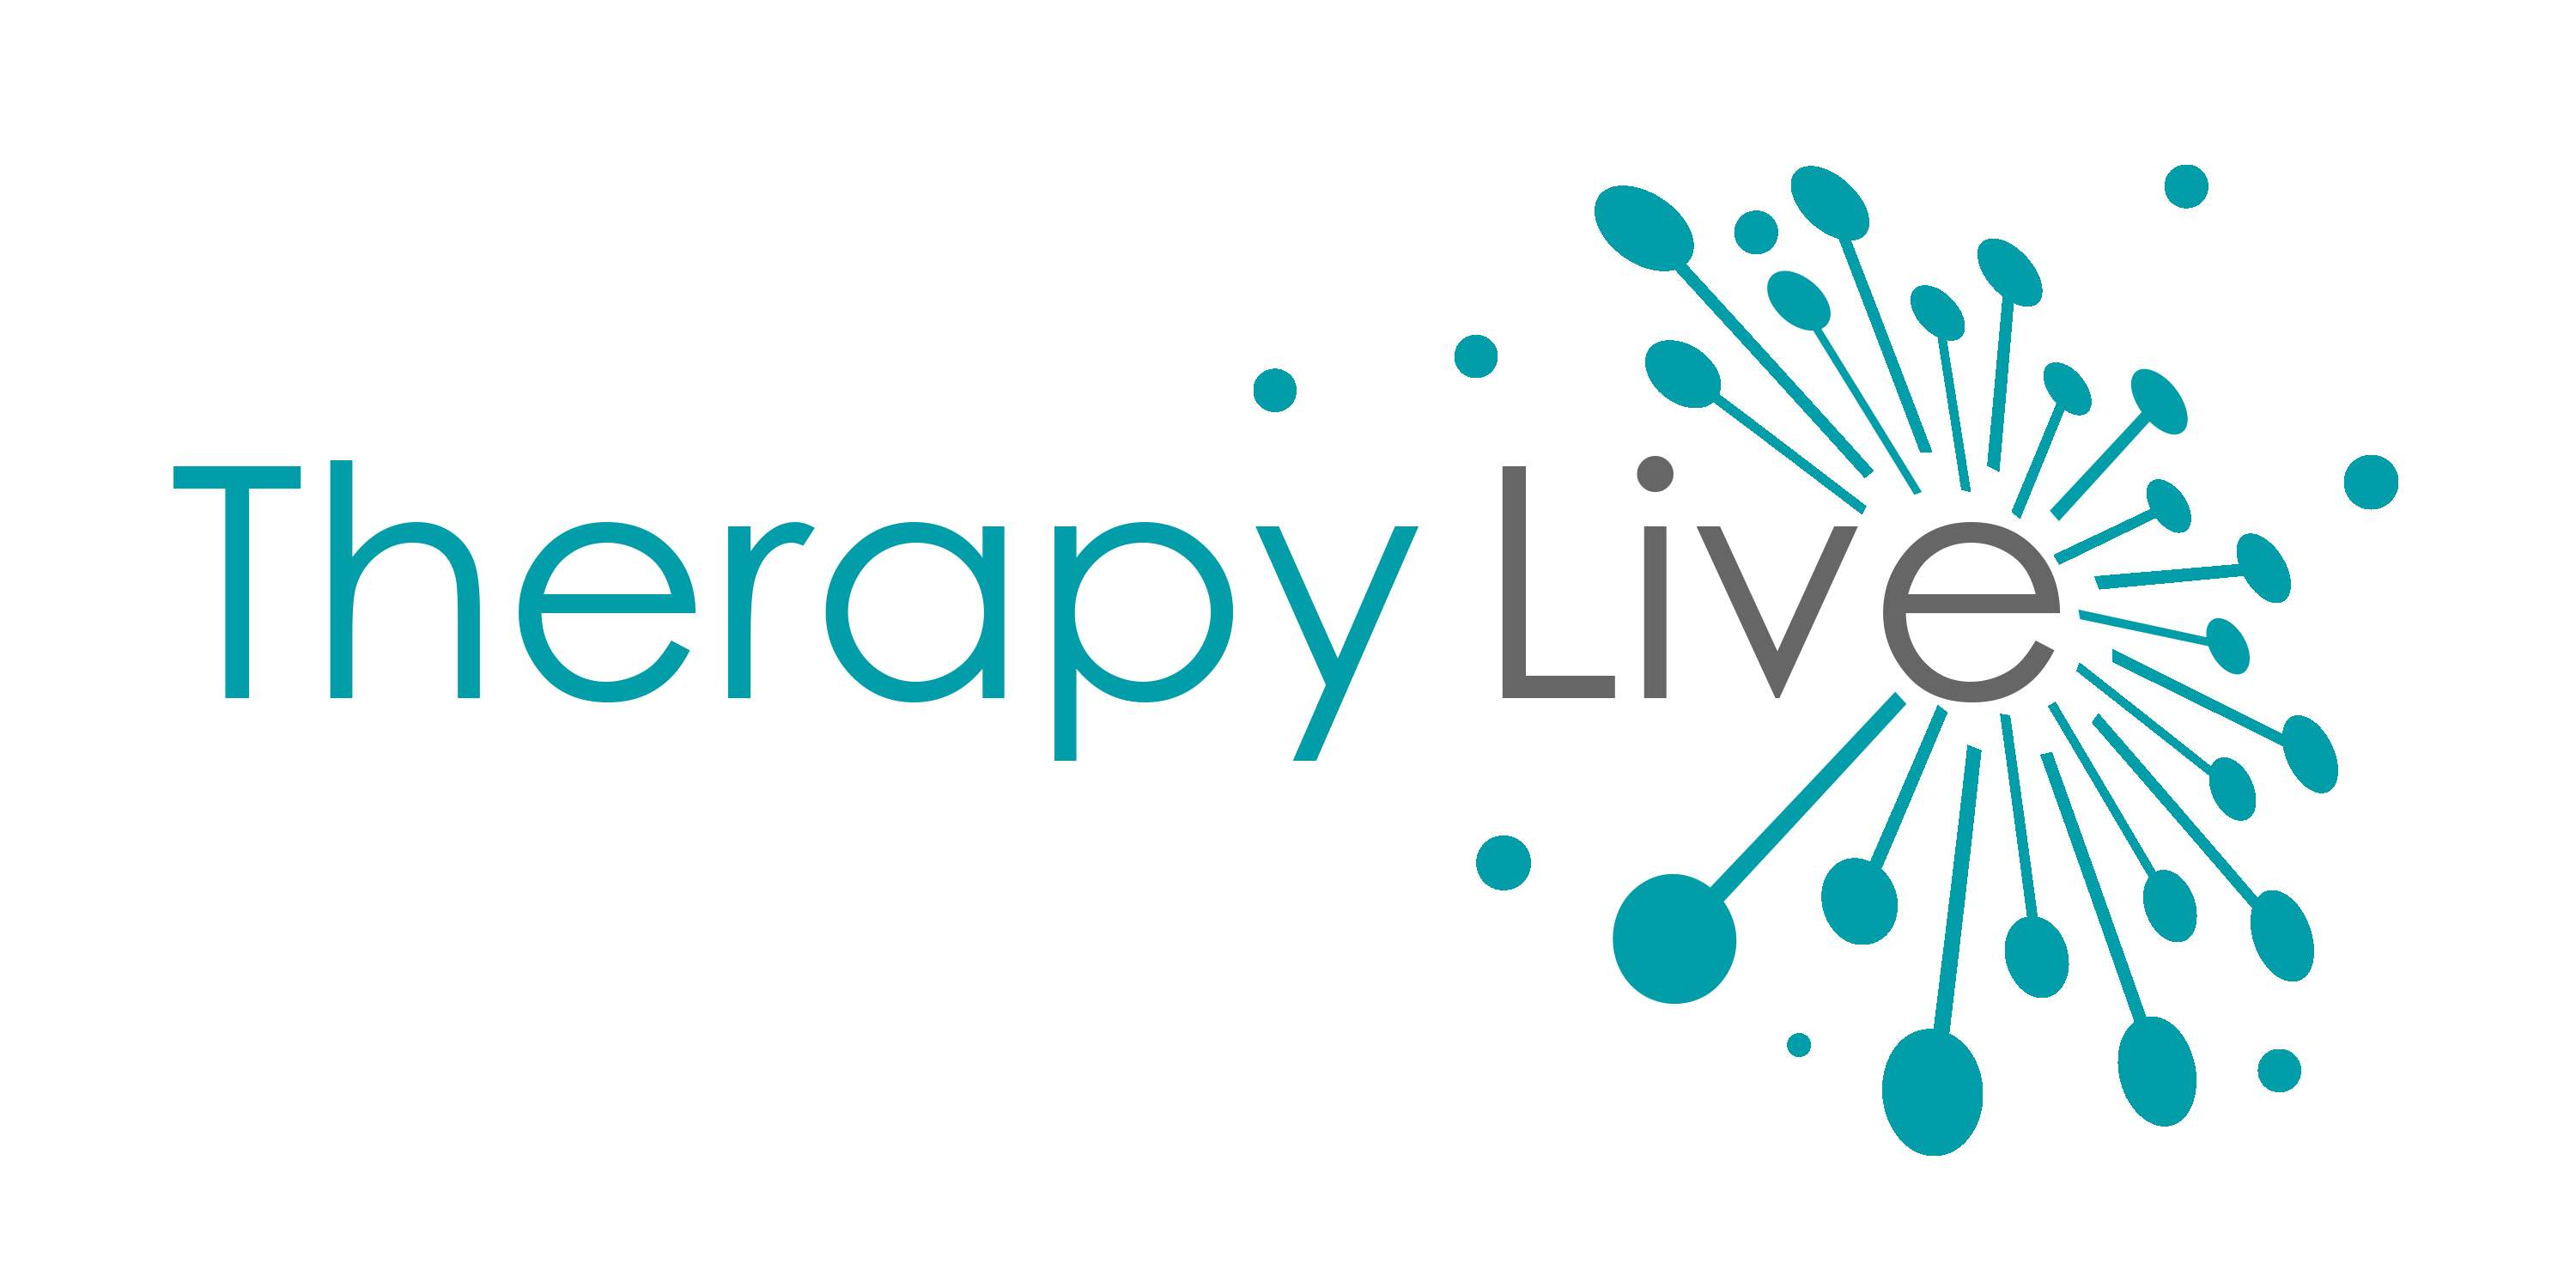 Therapy Live